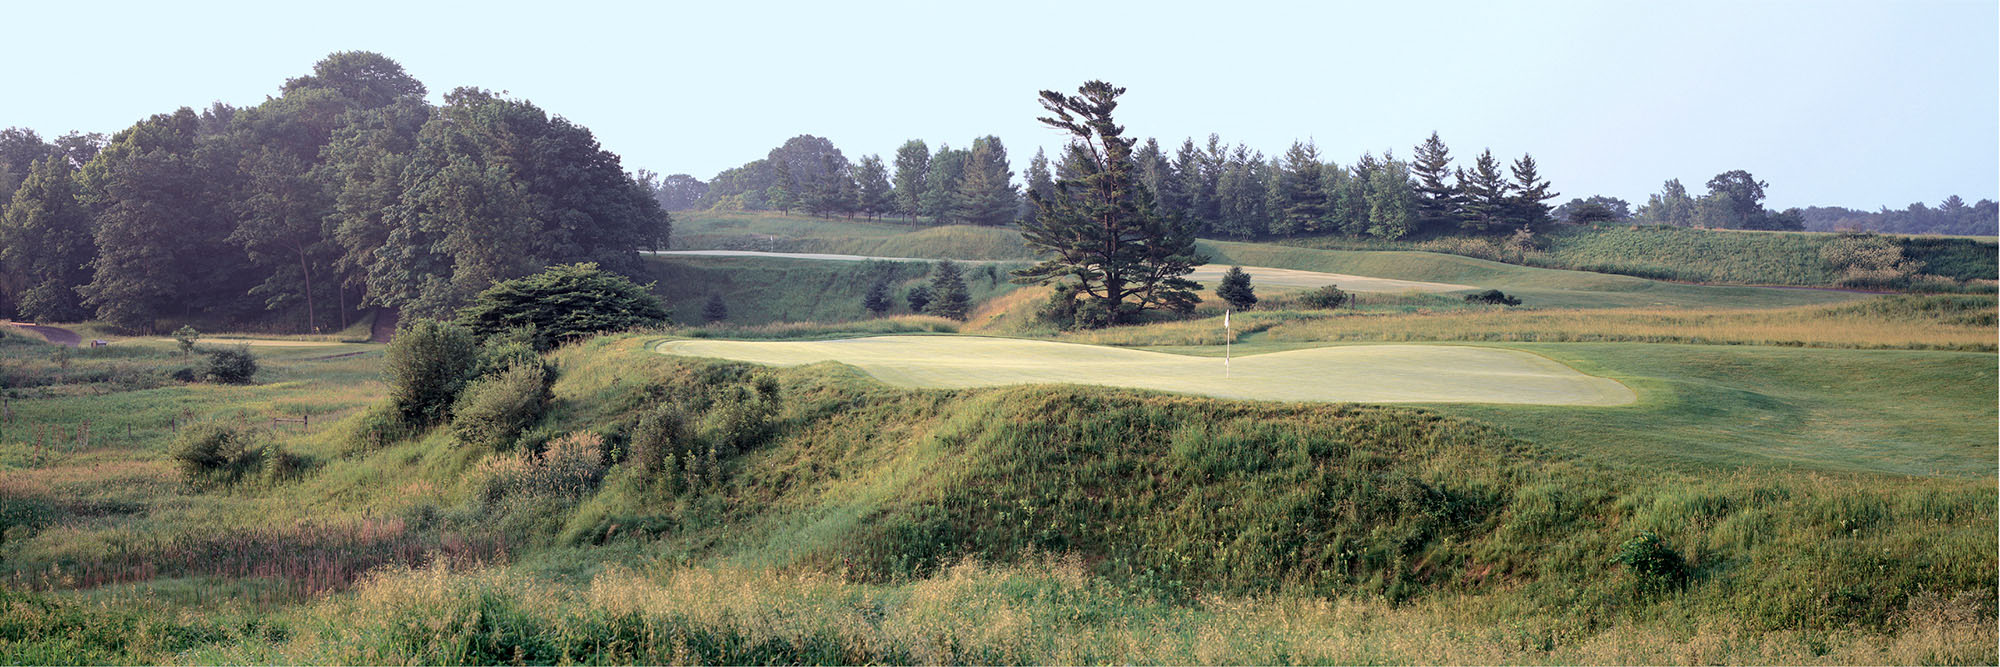 Golf Course Image - Blackwolf Run Meadow Valleys No. 15